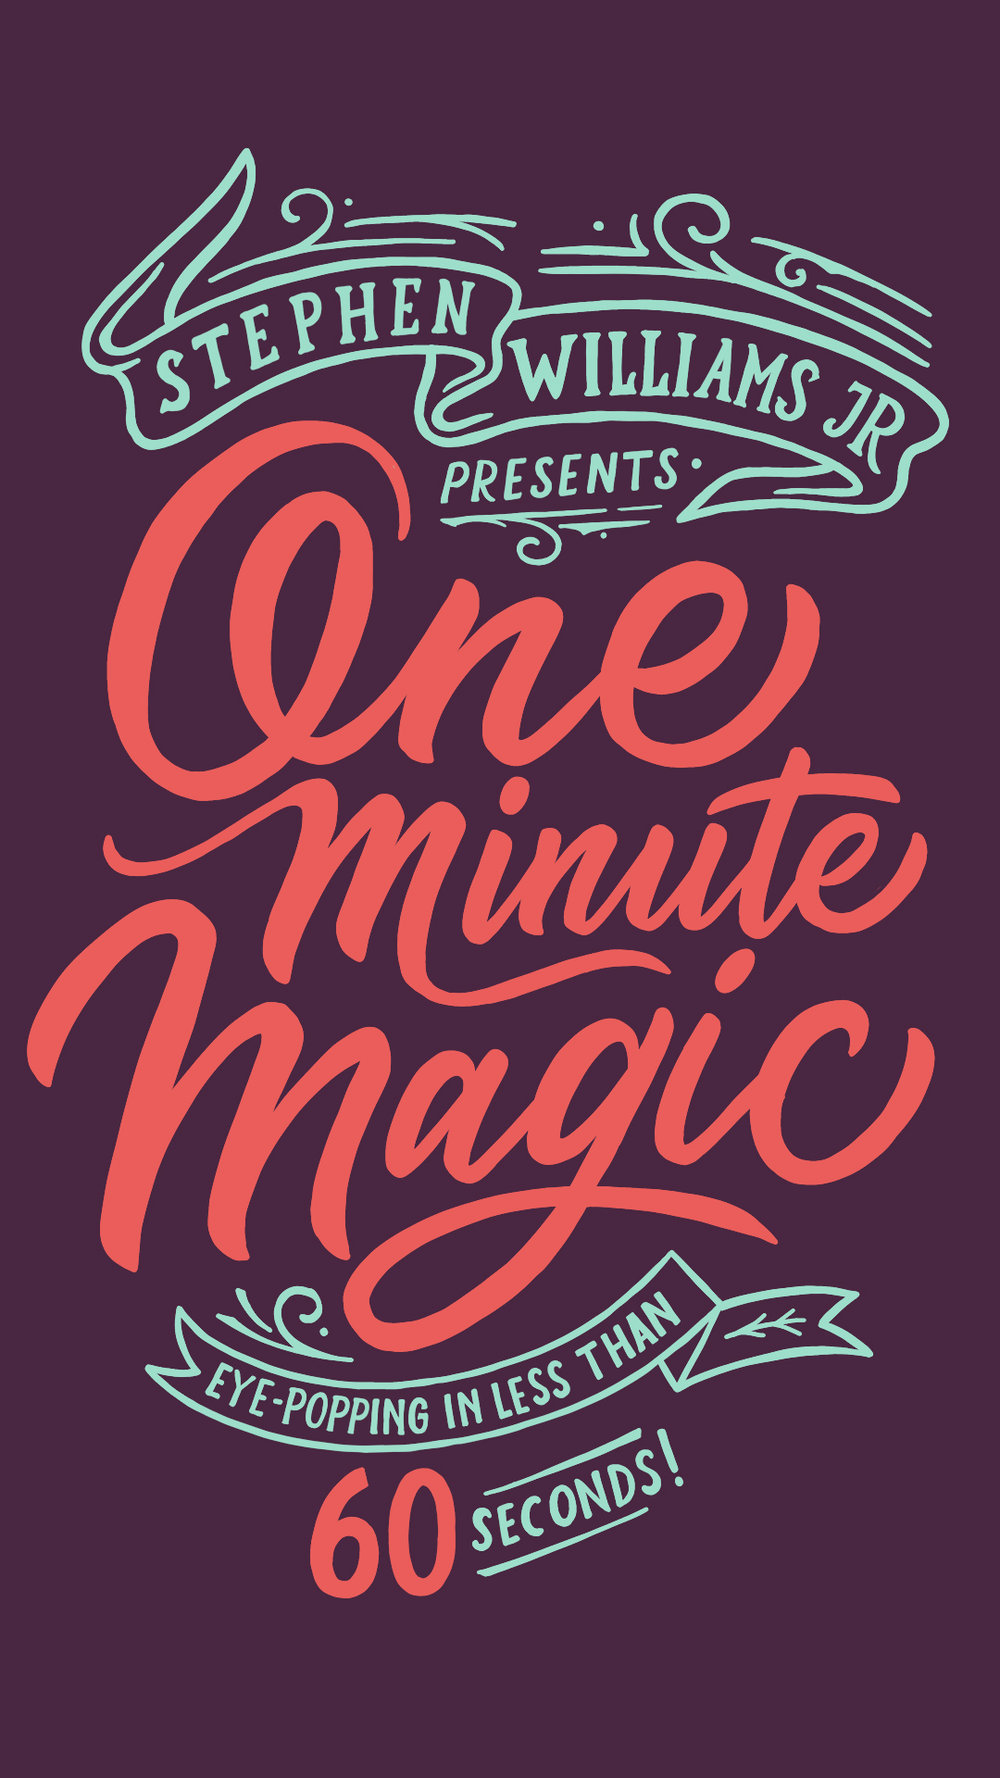 One-Minute-Magic-Web-2.jpg